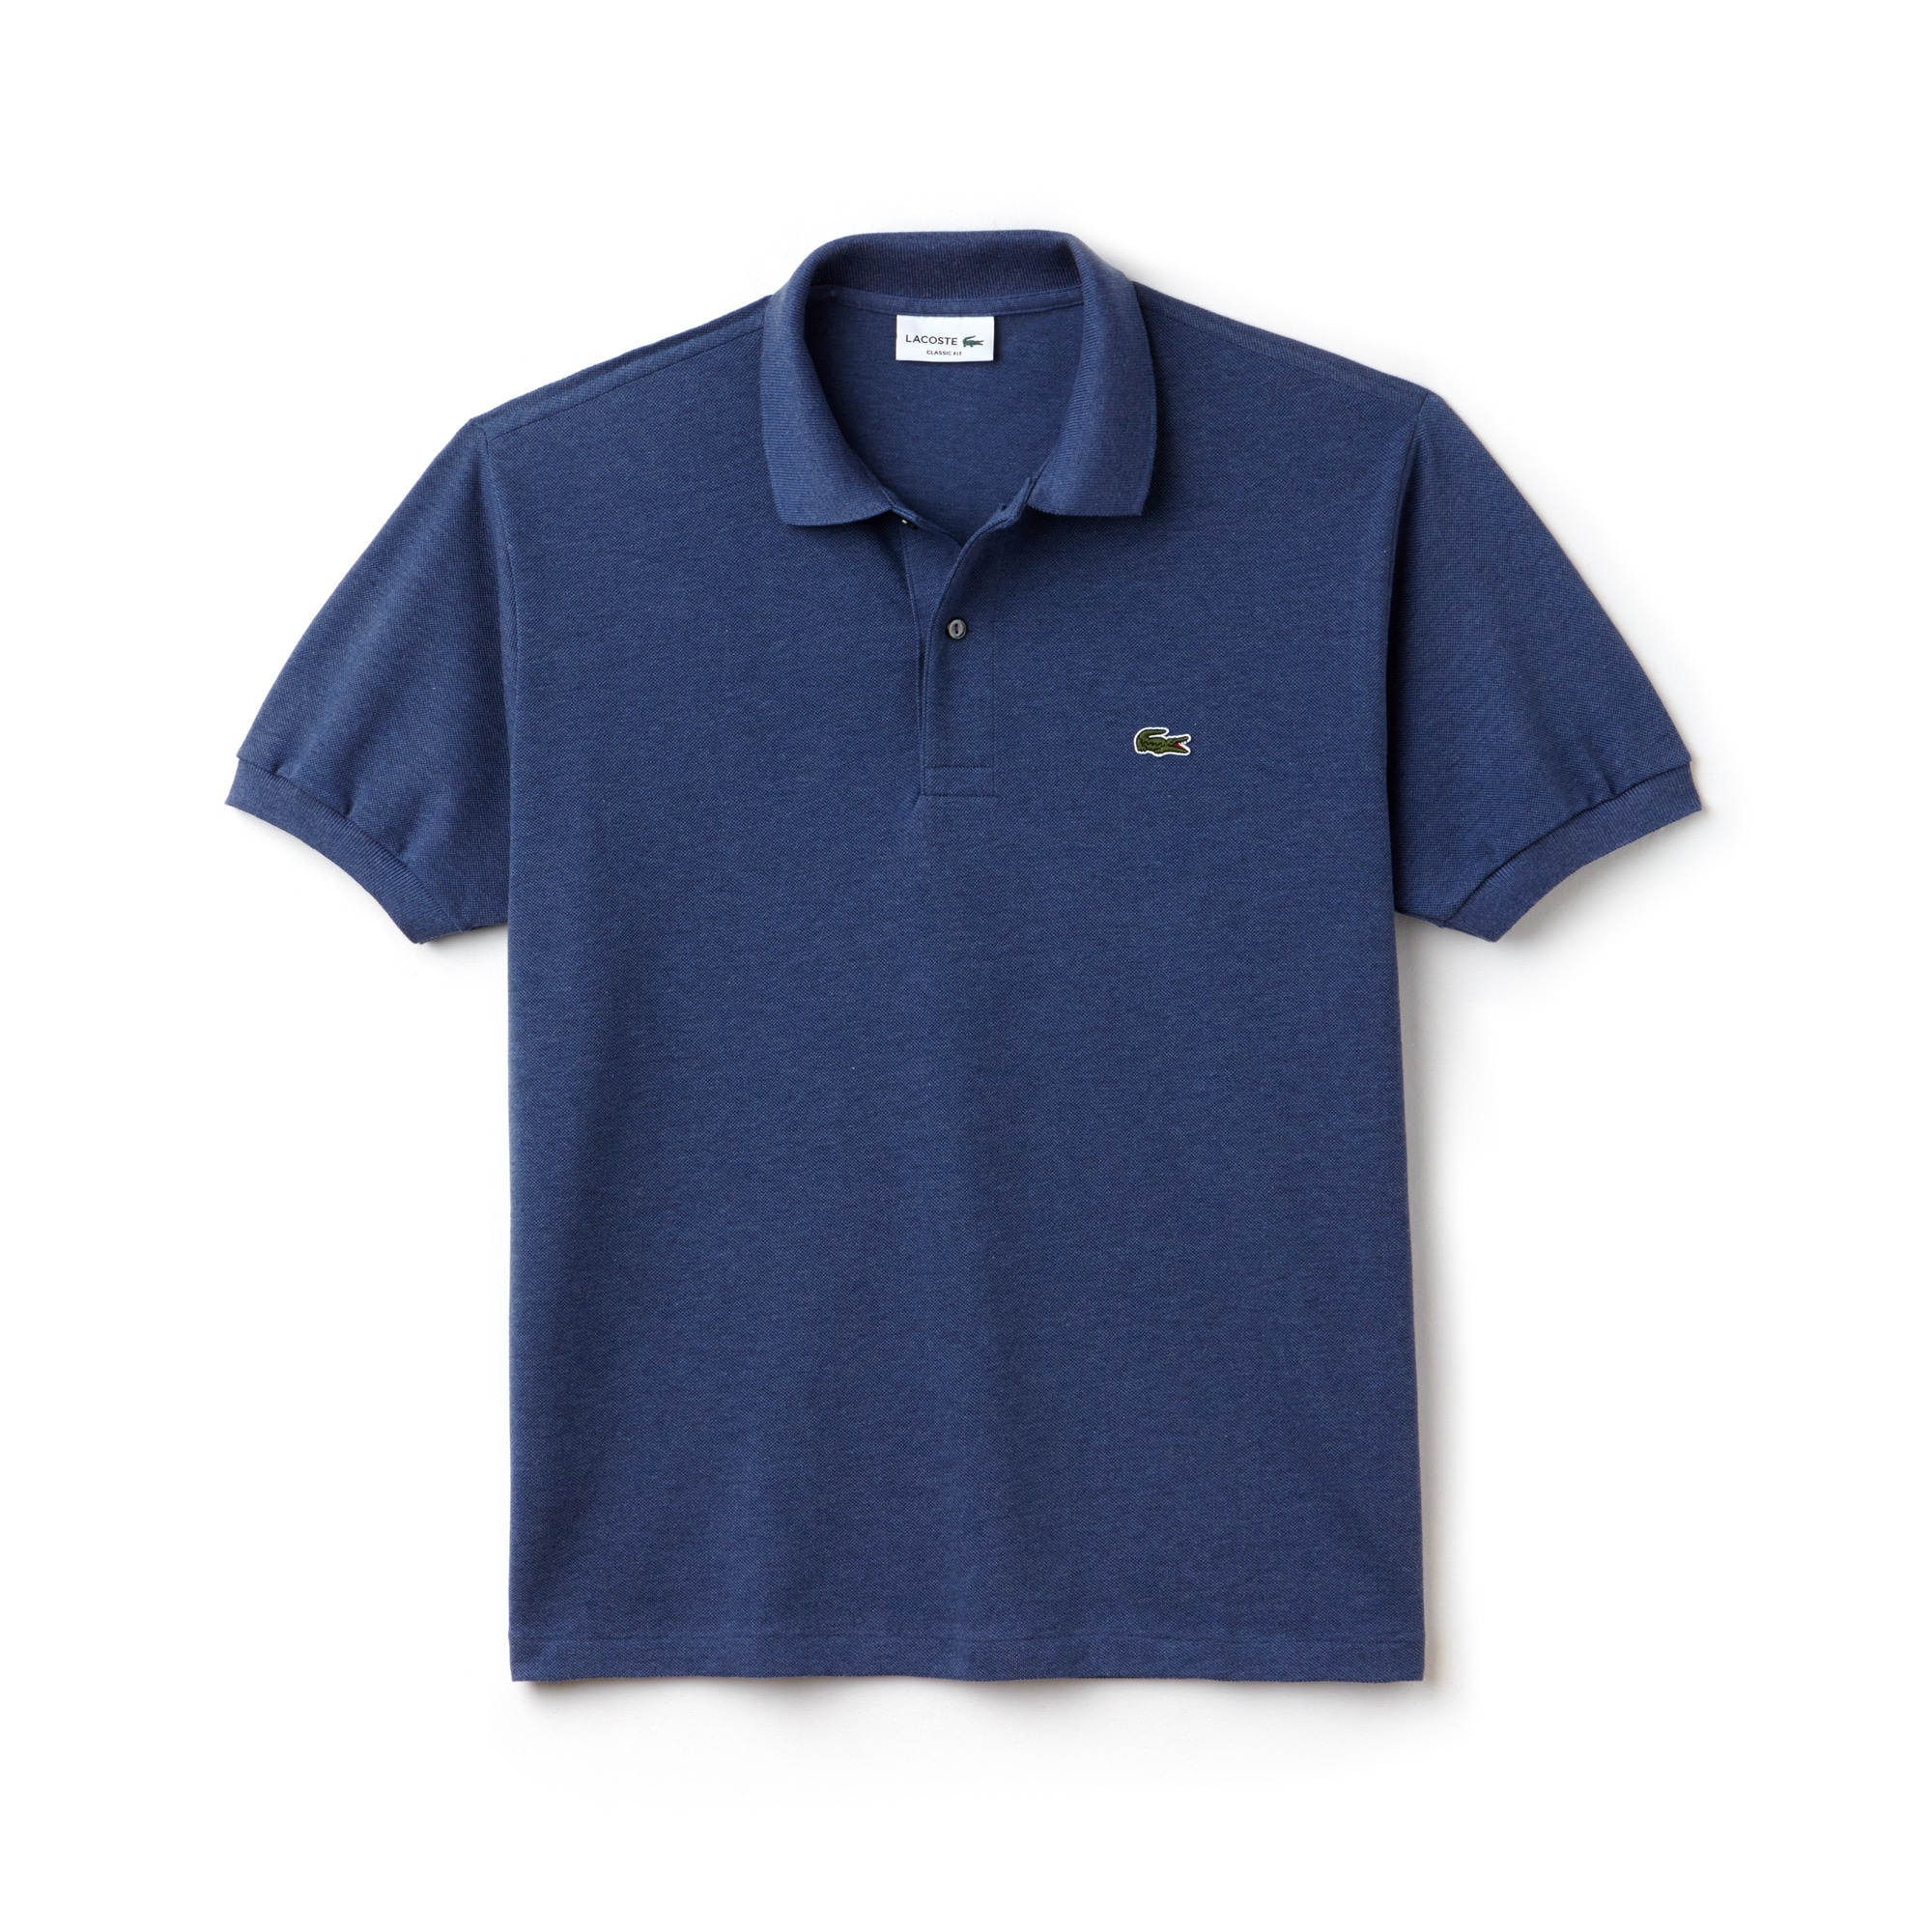 Gechineerde Lacoste L.12.12 polo